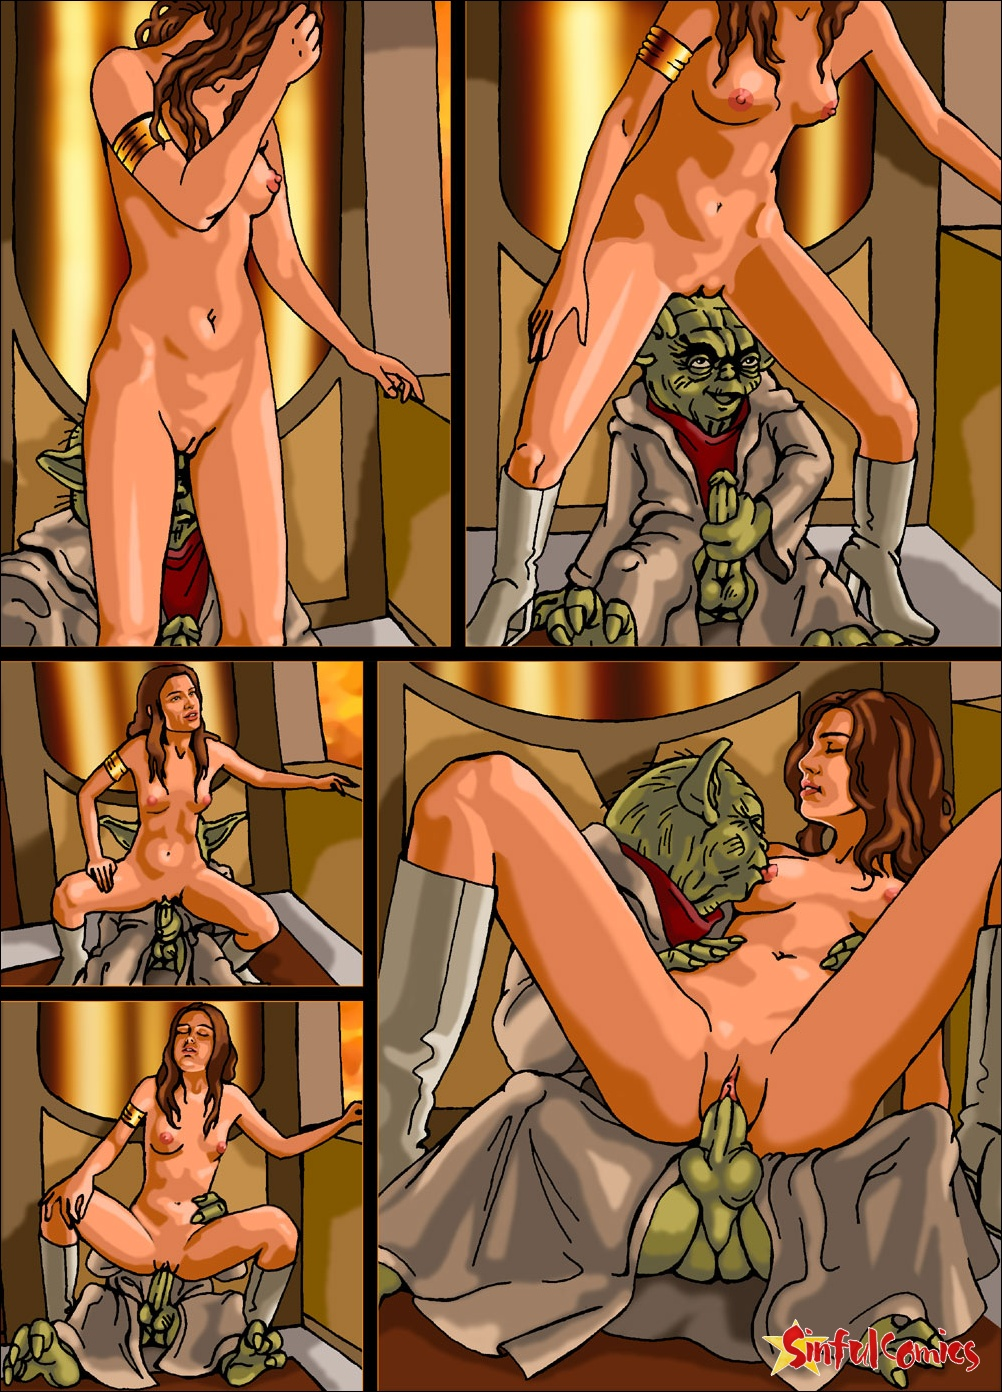 Star wars sex stories hentia clips